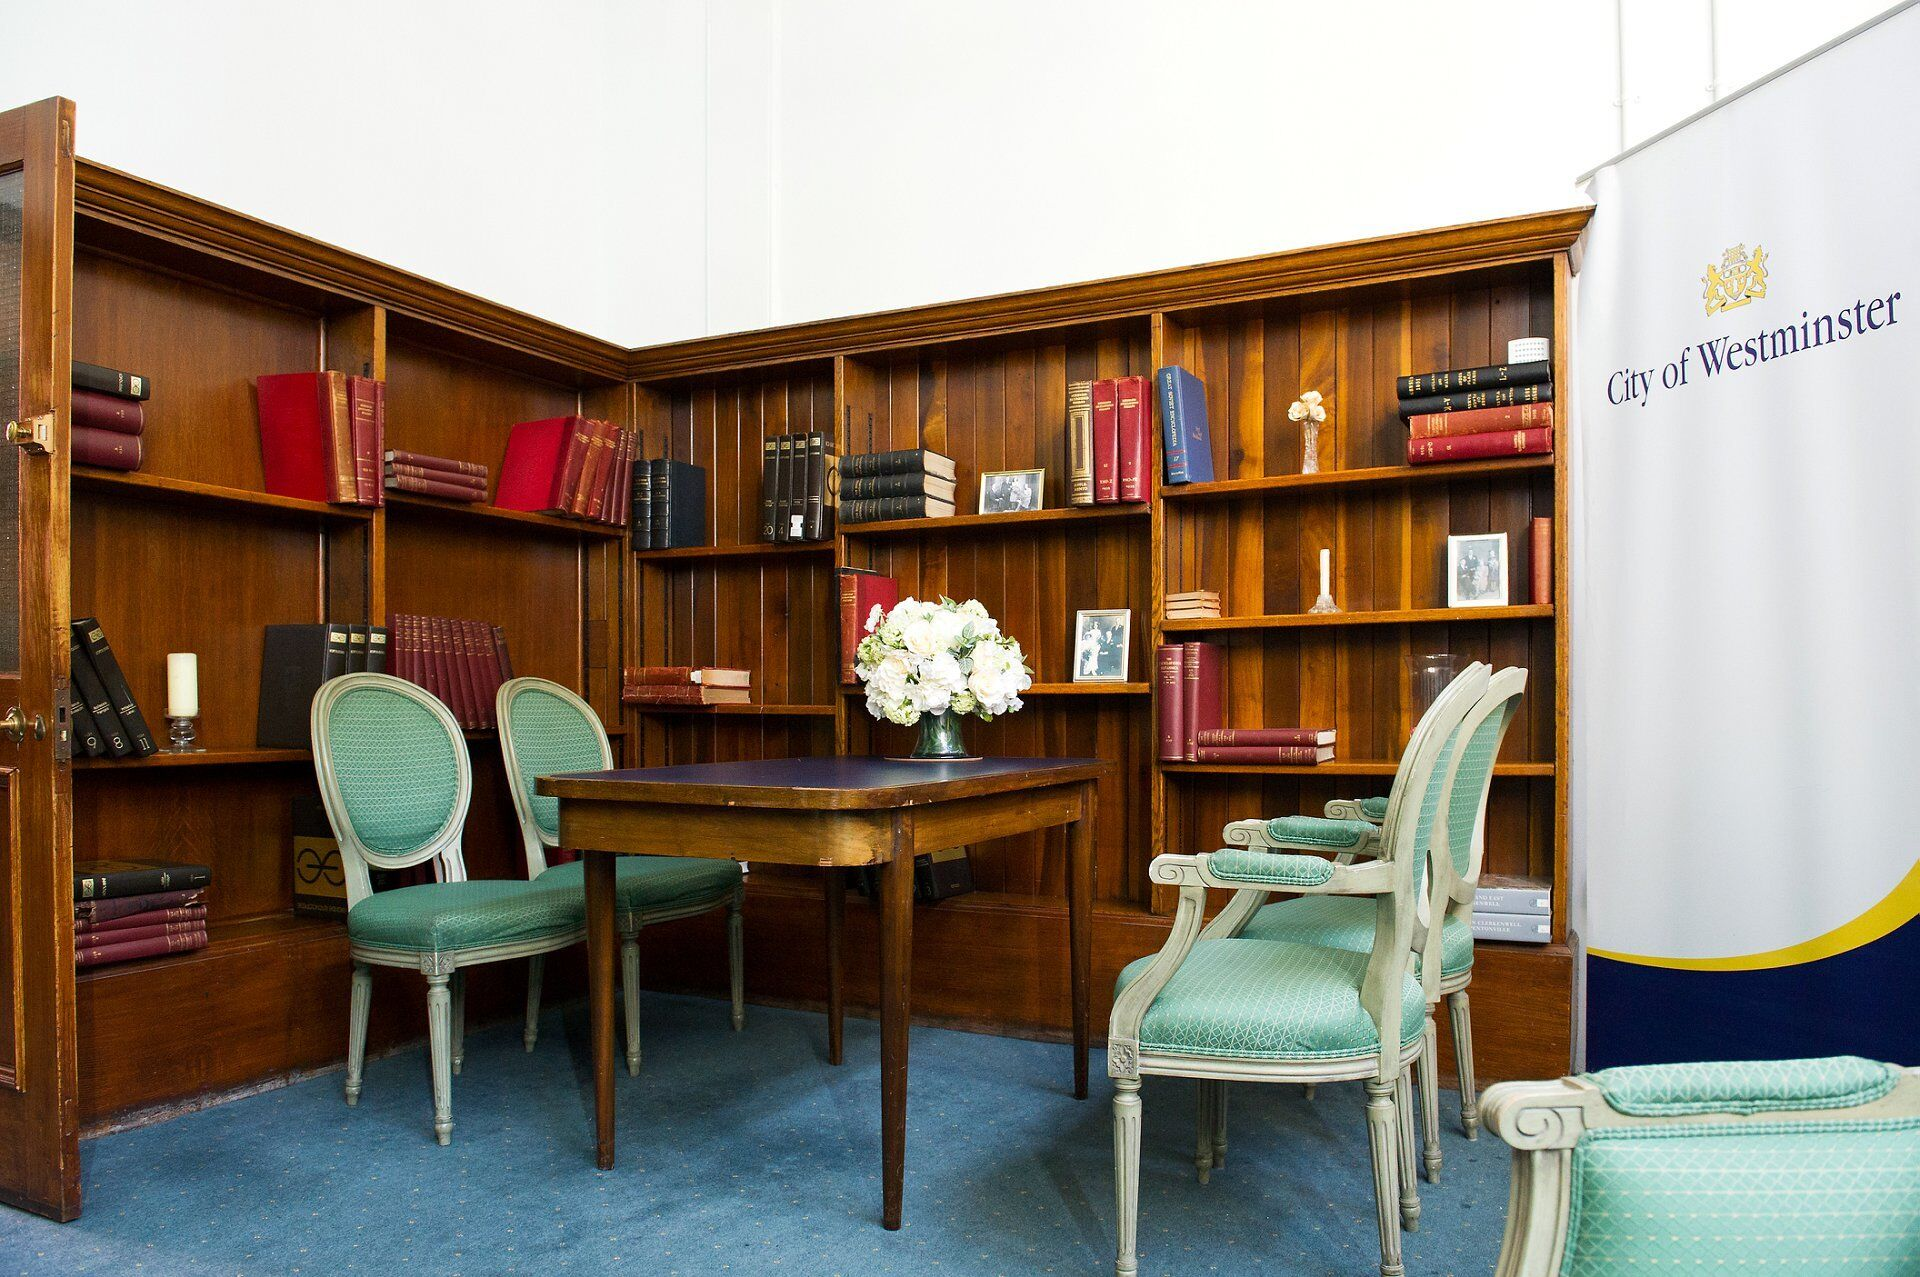 pre-ceremony-meeting-room-at-mayfair-library-for-brides-and-grooms-marrying-at-westminster-register-office